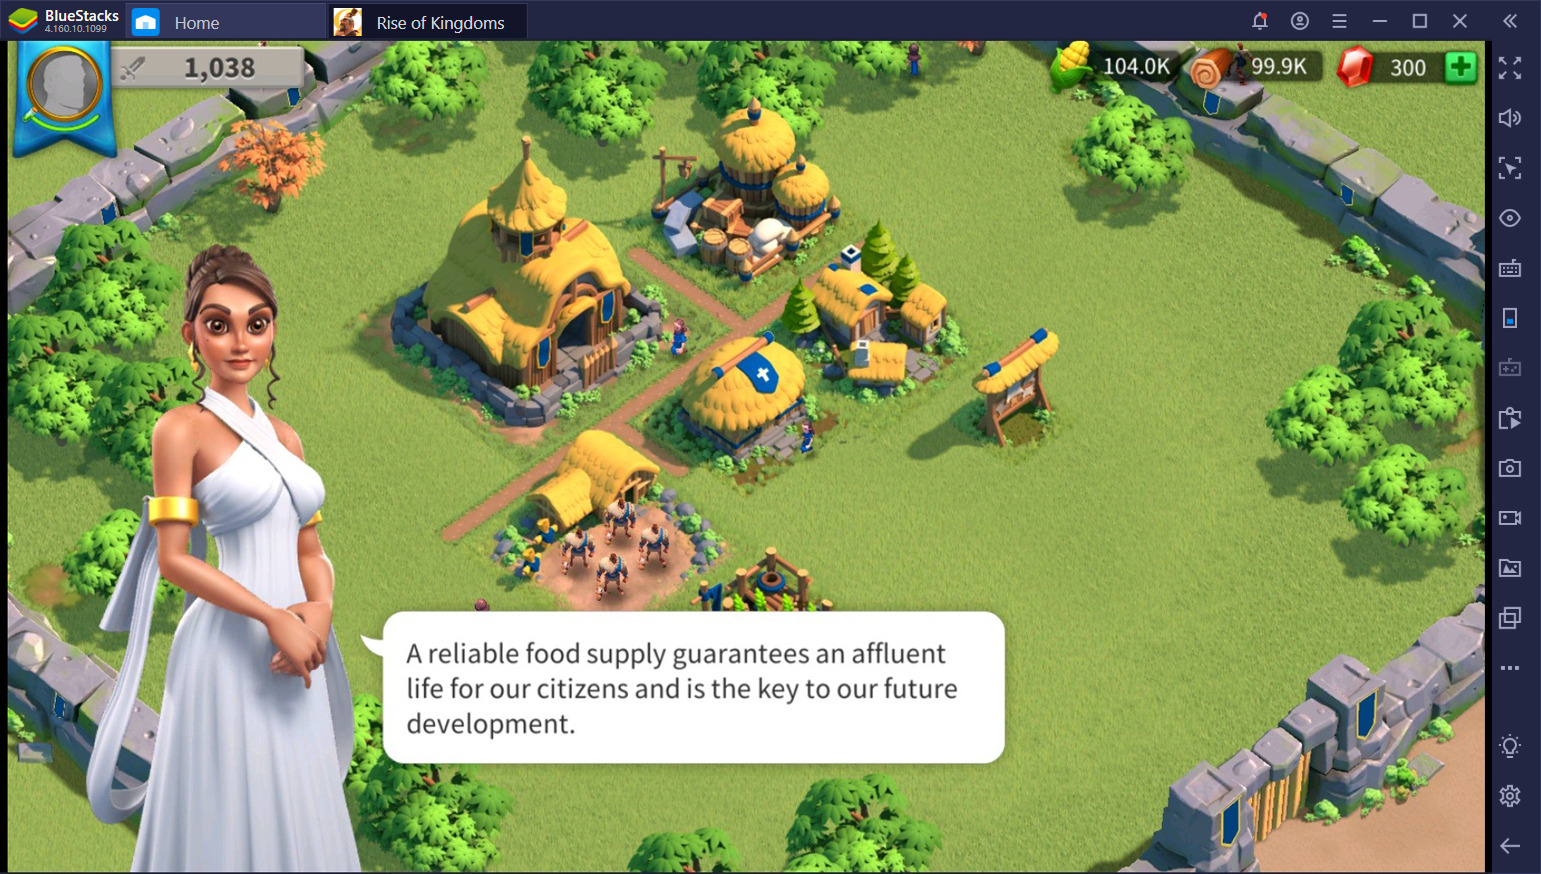 Learn to Play Rise of Kingdoms - Check Out How